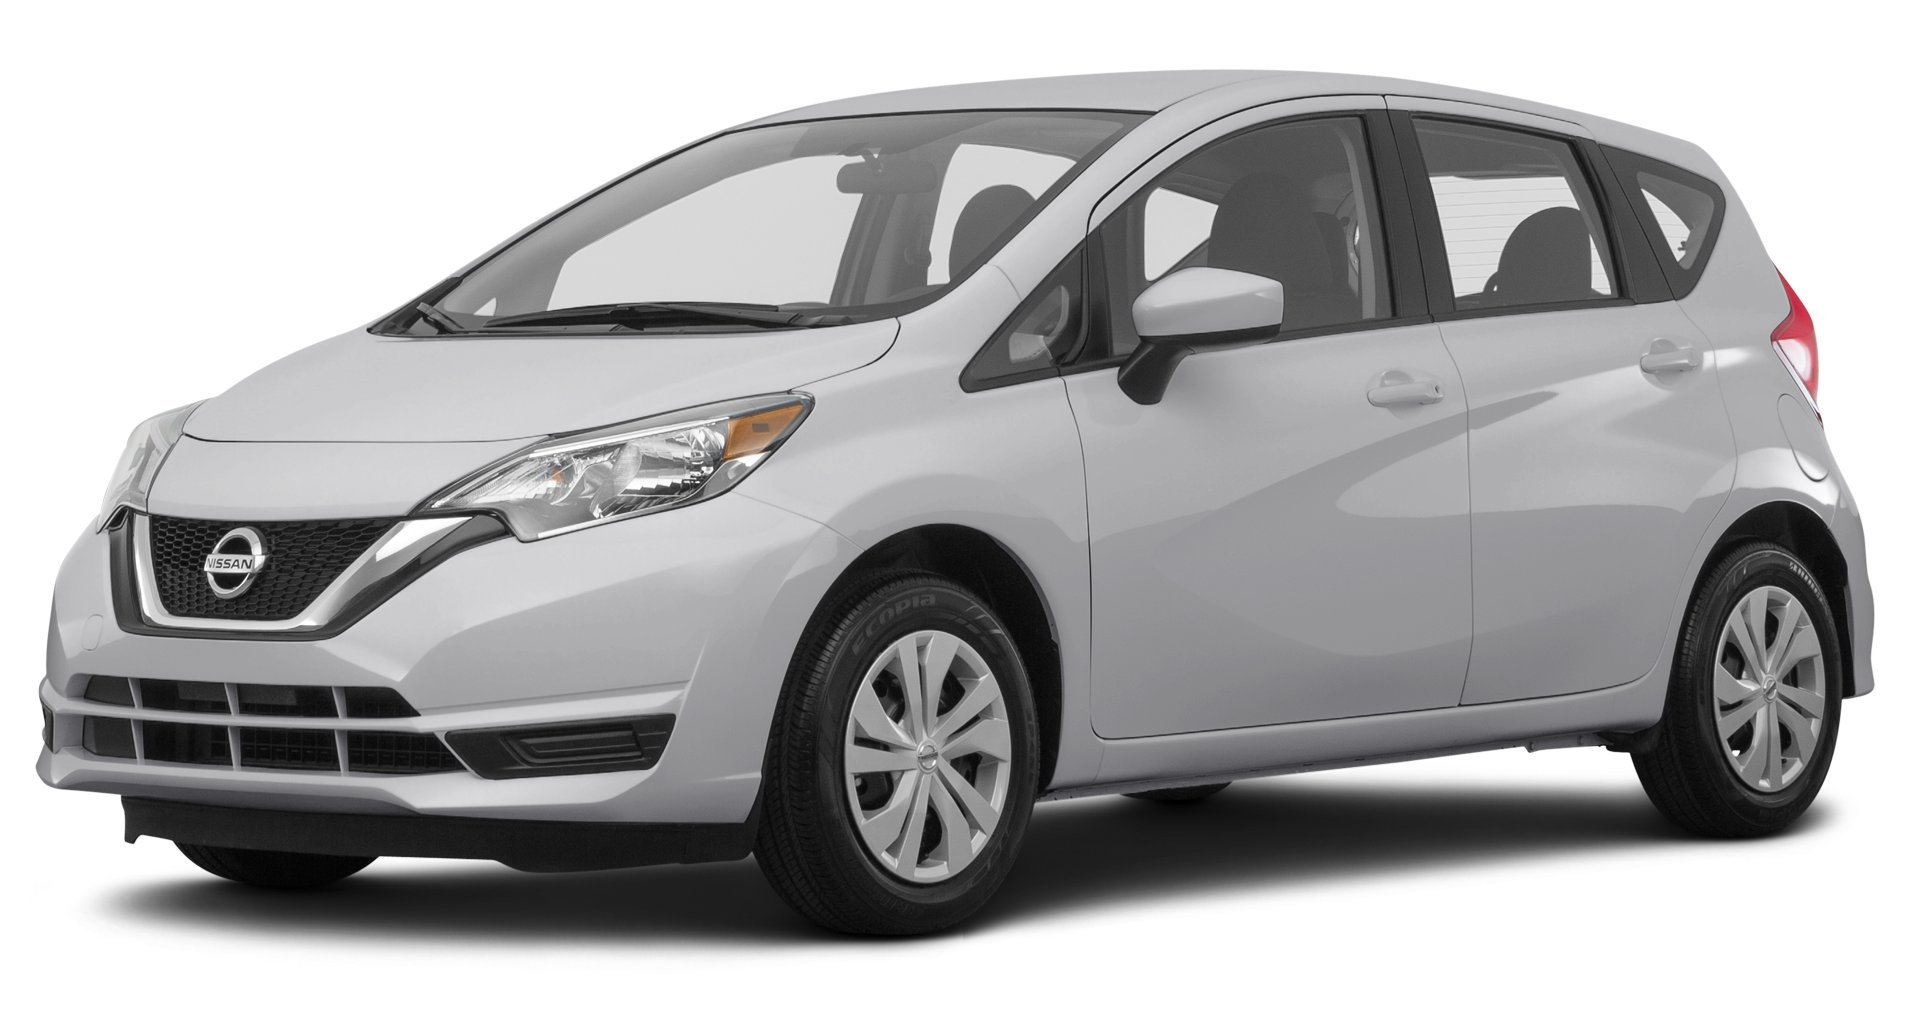 2017 nissan versa note reviews images and specs vehicles. Black Bedroom Furniture Sets. Home Design Ideas